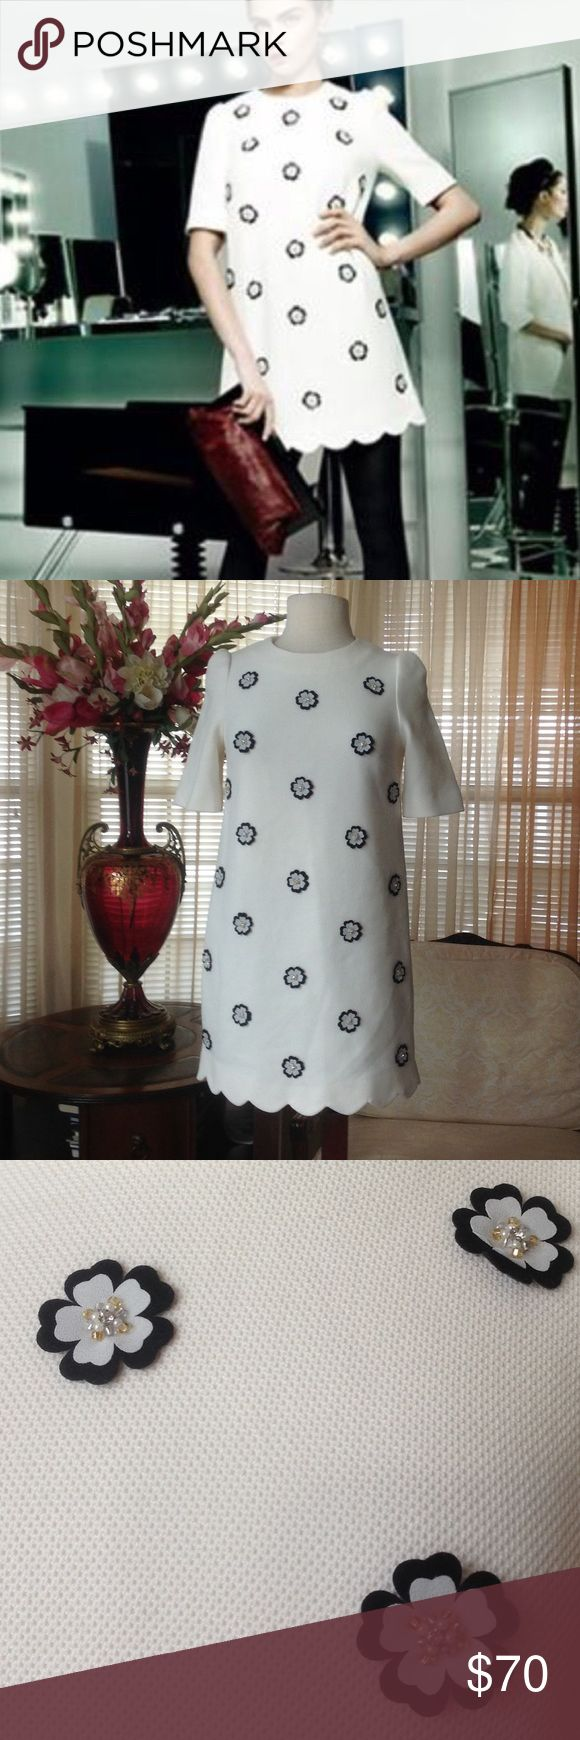 "Ochirly floral dress Never worn. It is 32"" long. It also lined. Color is light cream.                  .                           d ochirly Dresses Mini"